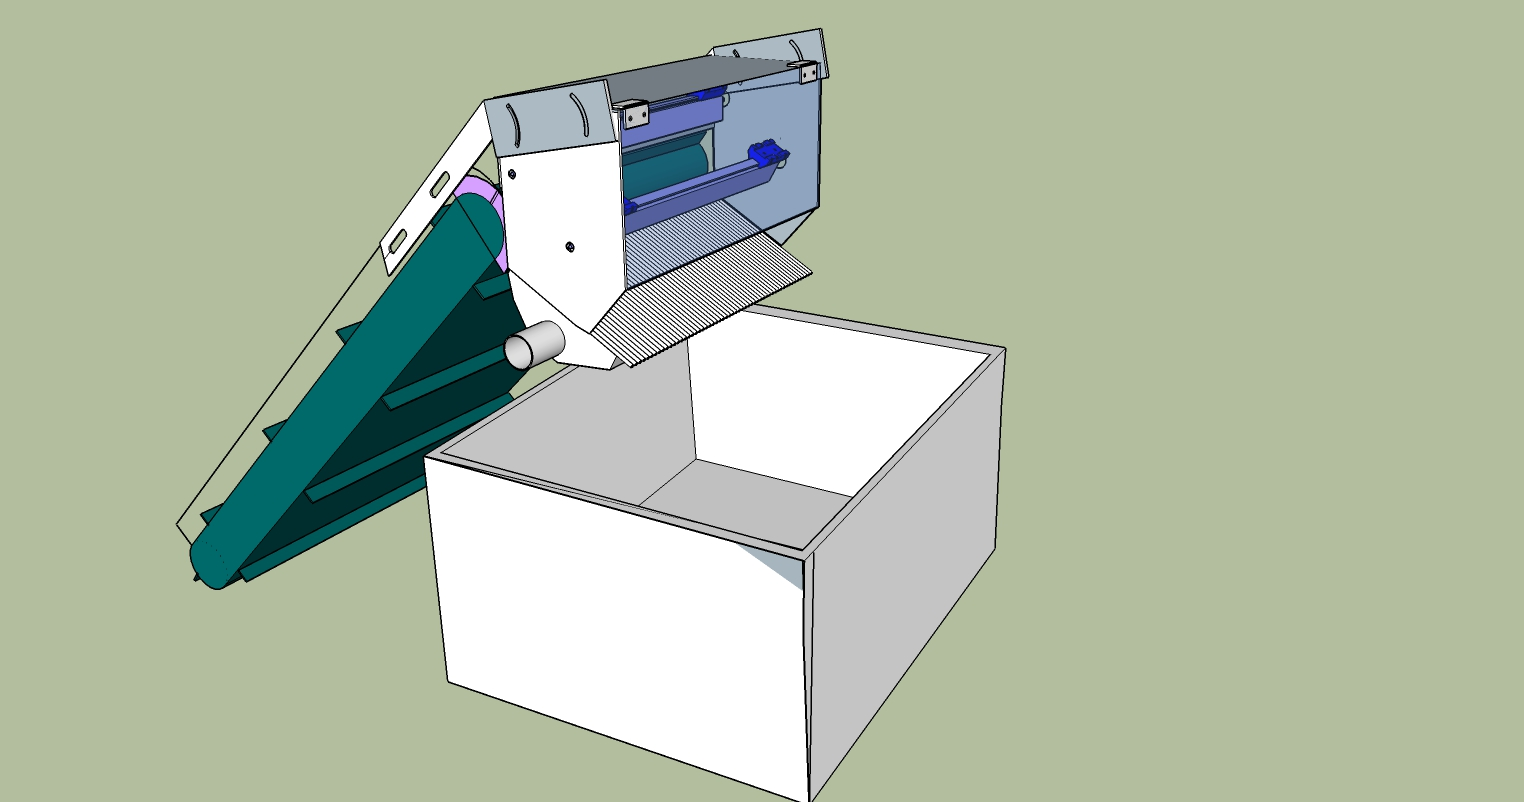 Unique solution for a medical device plastic injection molder who